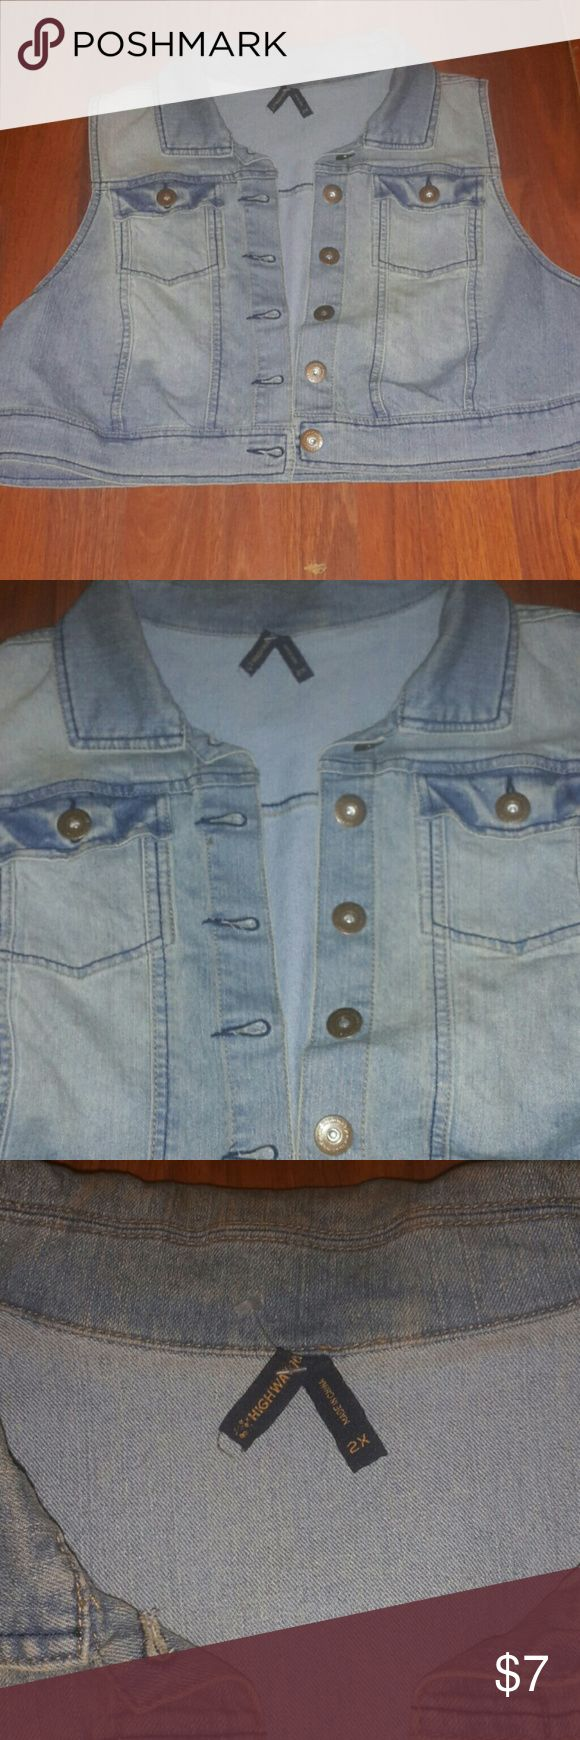 Cropped sleeveless denim jacket Pre-owned- Never worn-Great for strapless dresses Highway Jeans Jackets & Coats Vests